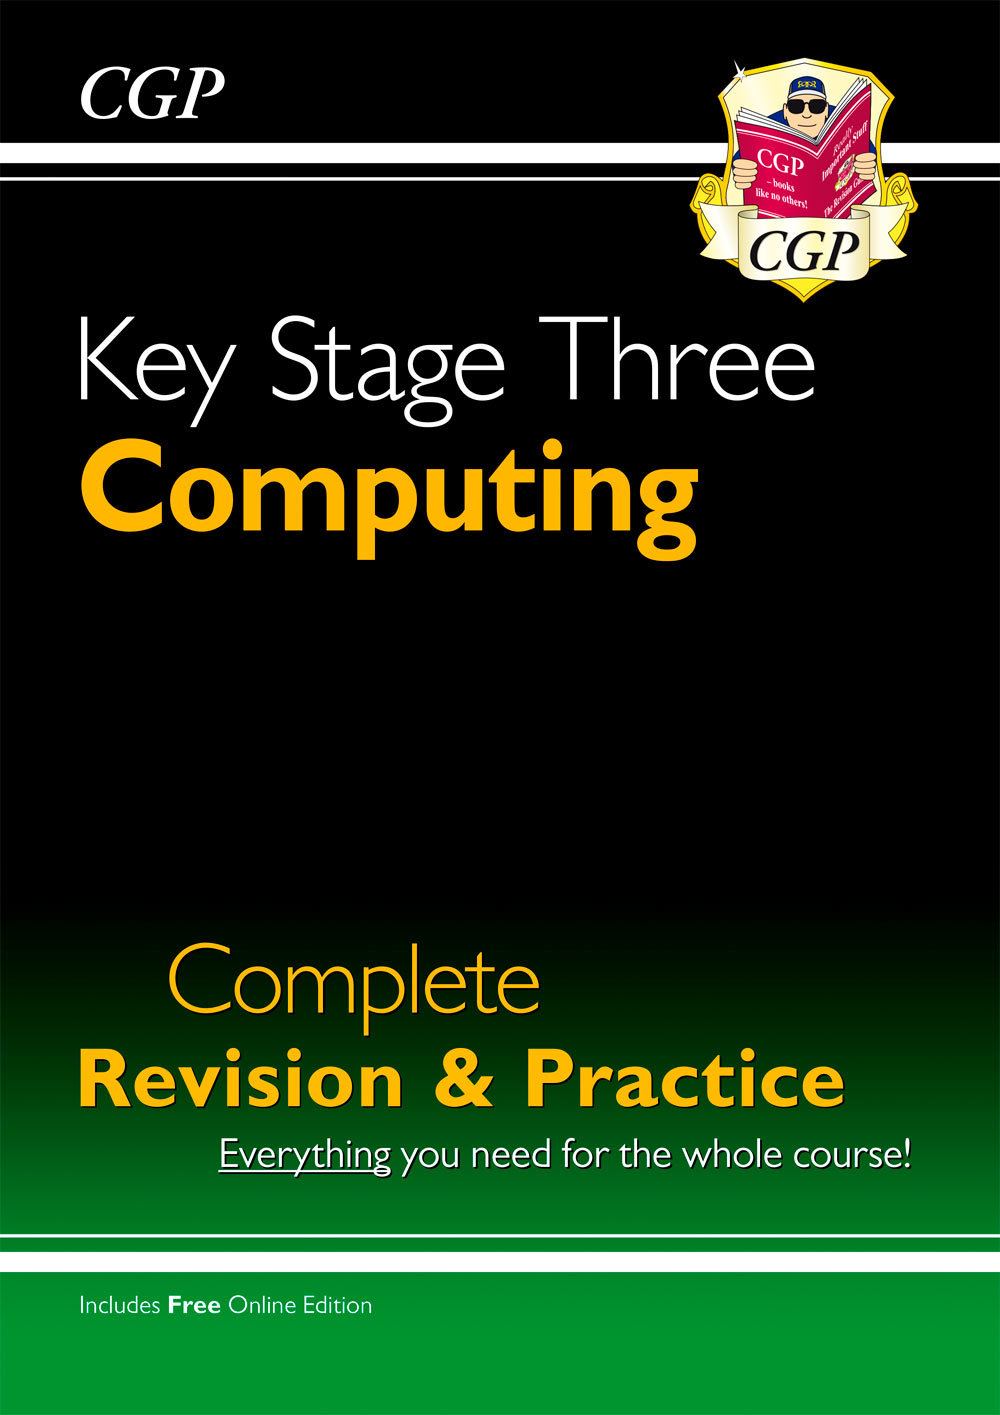 COS31 - New KS3 Computing Complete Revision & Practice